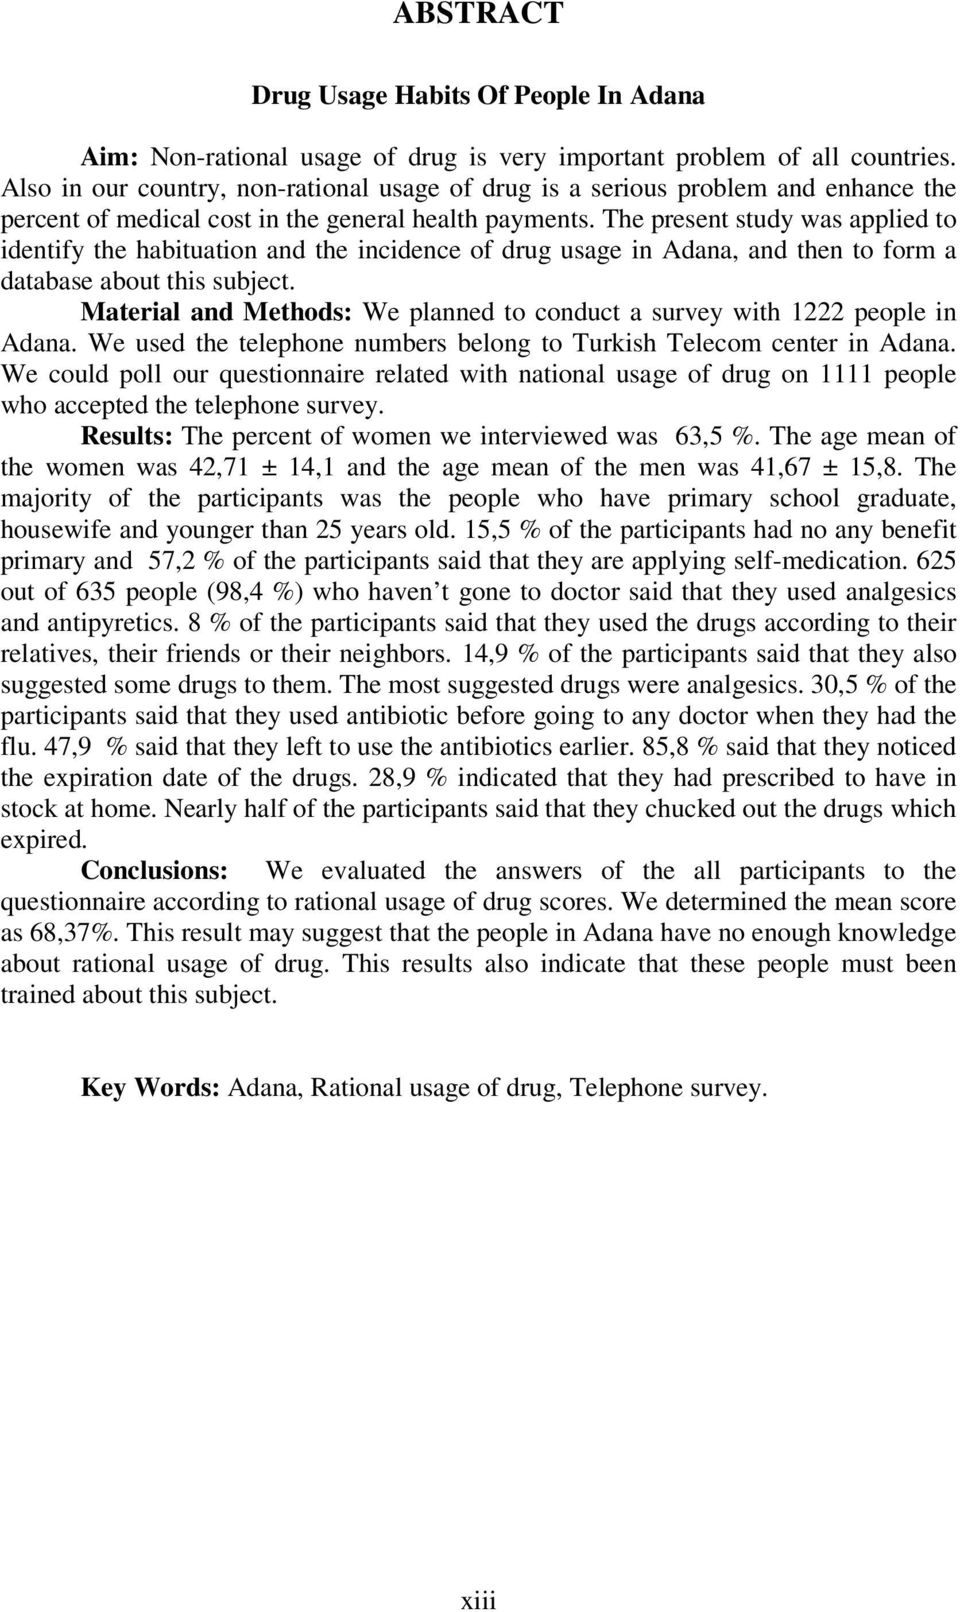 The present study was applied to identify the habituation and the incidence of drug usage in Adana, and then to form a database about this subject.